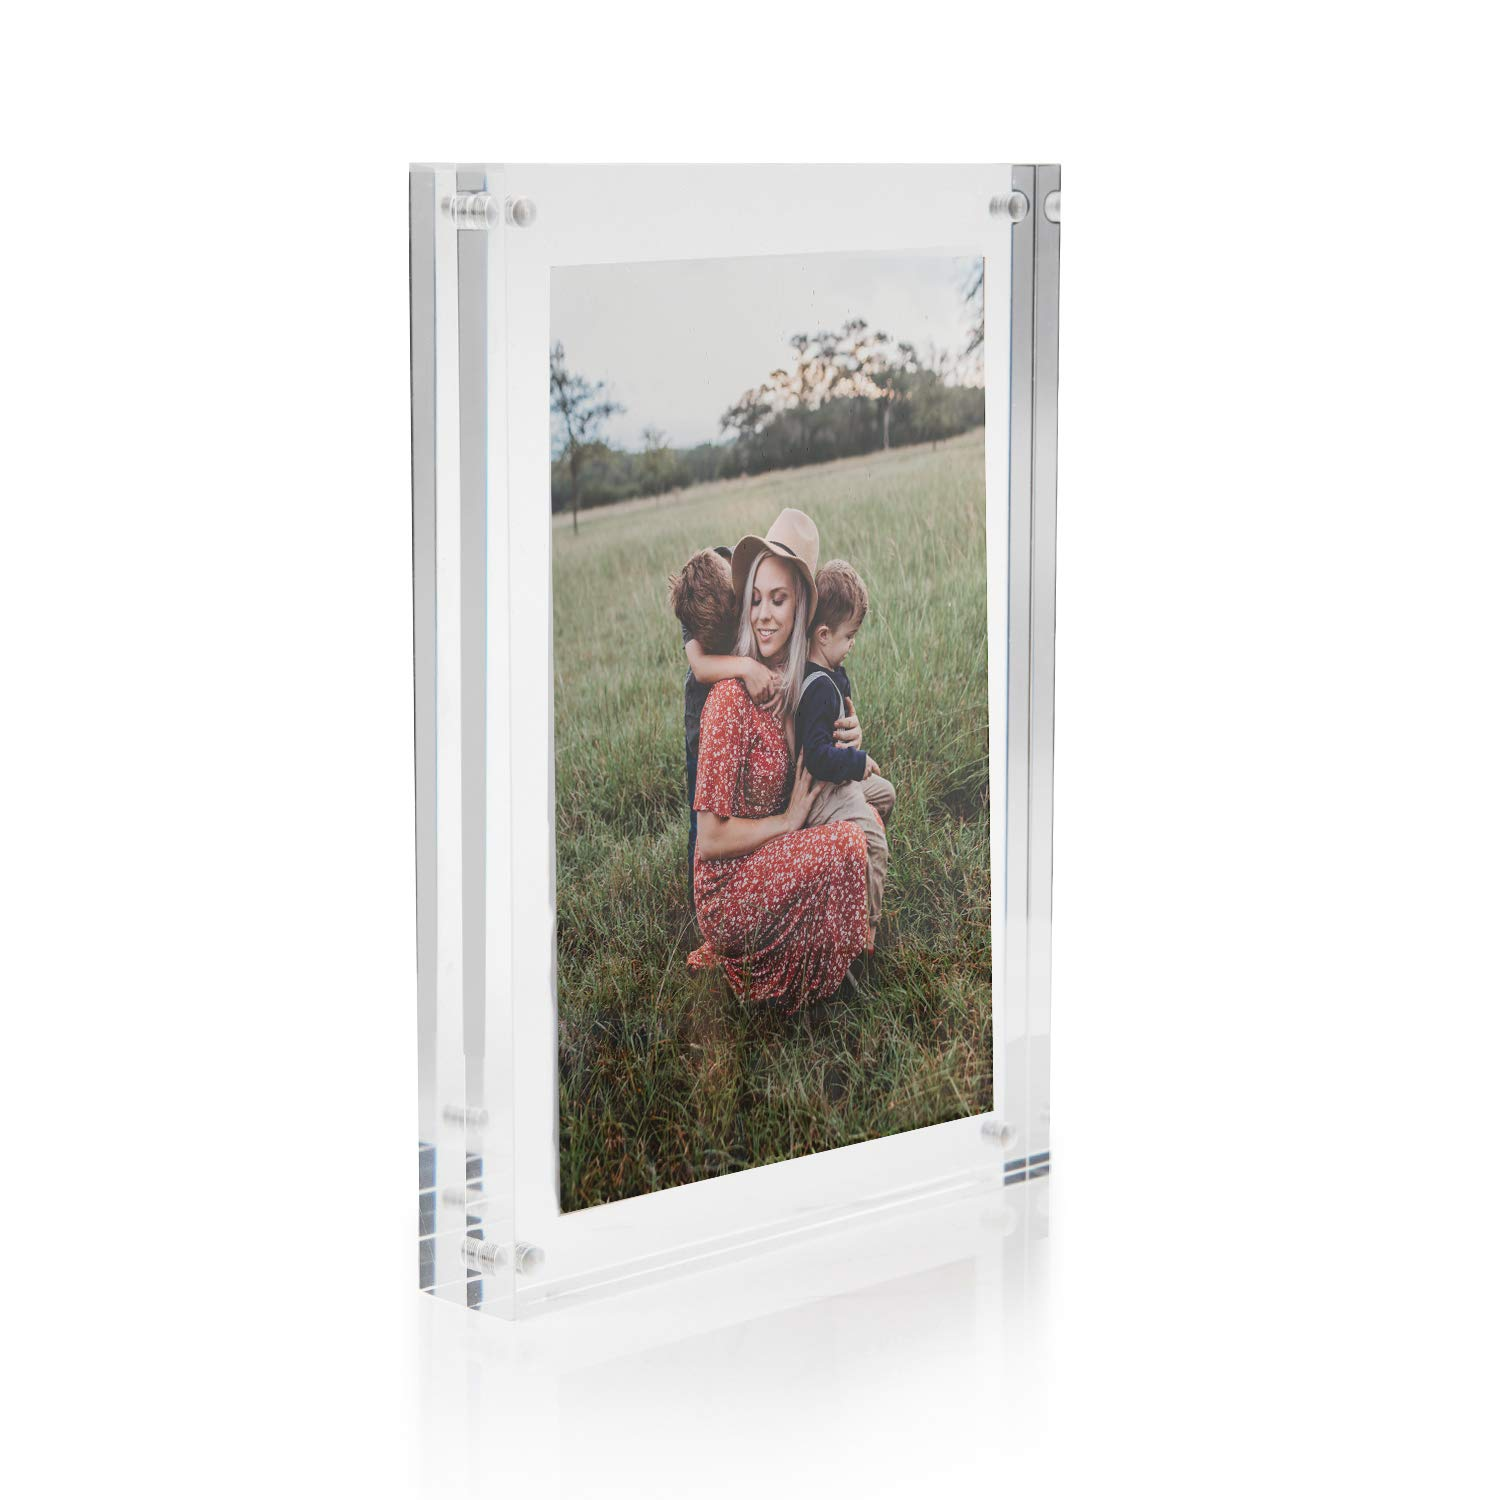 Houseables Acrylic Glass Picture Frame, Magnetic Clear Photo Frames, 5''x7'', 1 Pack, Standard Pictures Size, Double Sided, Frameless, for Desk, Office, Display Friends, Graduation, Family, Postcard by Houseables